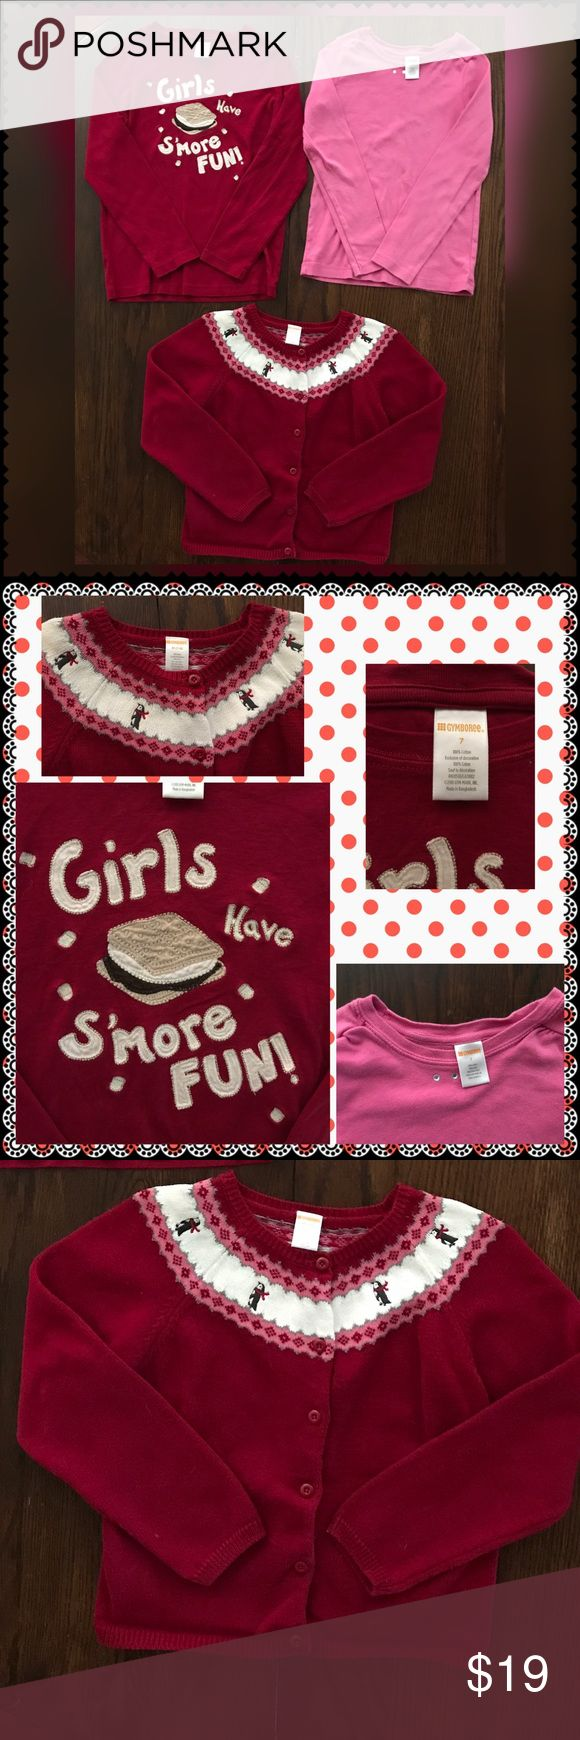 "Gymboree Top/Sweater Bundle ~ H1 One pink long sleeve top with rhinestones at the neck (7), long sleeve red top ""Girls Have Smores Fun"" (7), and Penguin 🐧 Sweater (7/8). All Gymboree. Great condition! Gymboree Shirts & Tops"